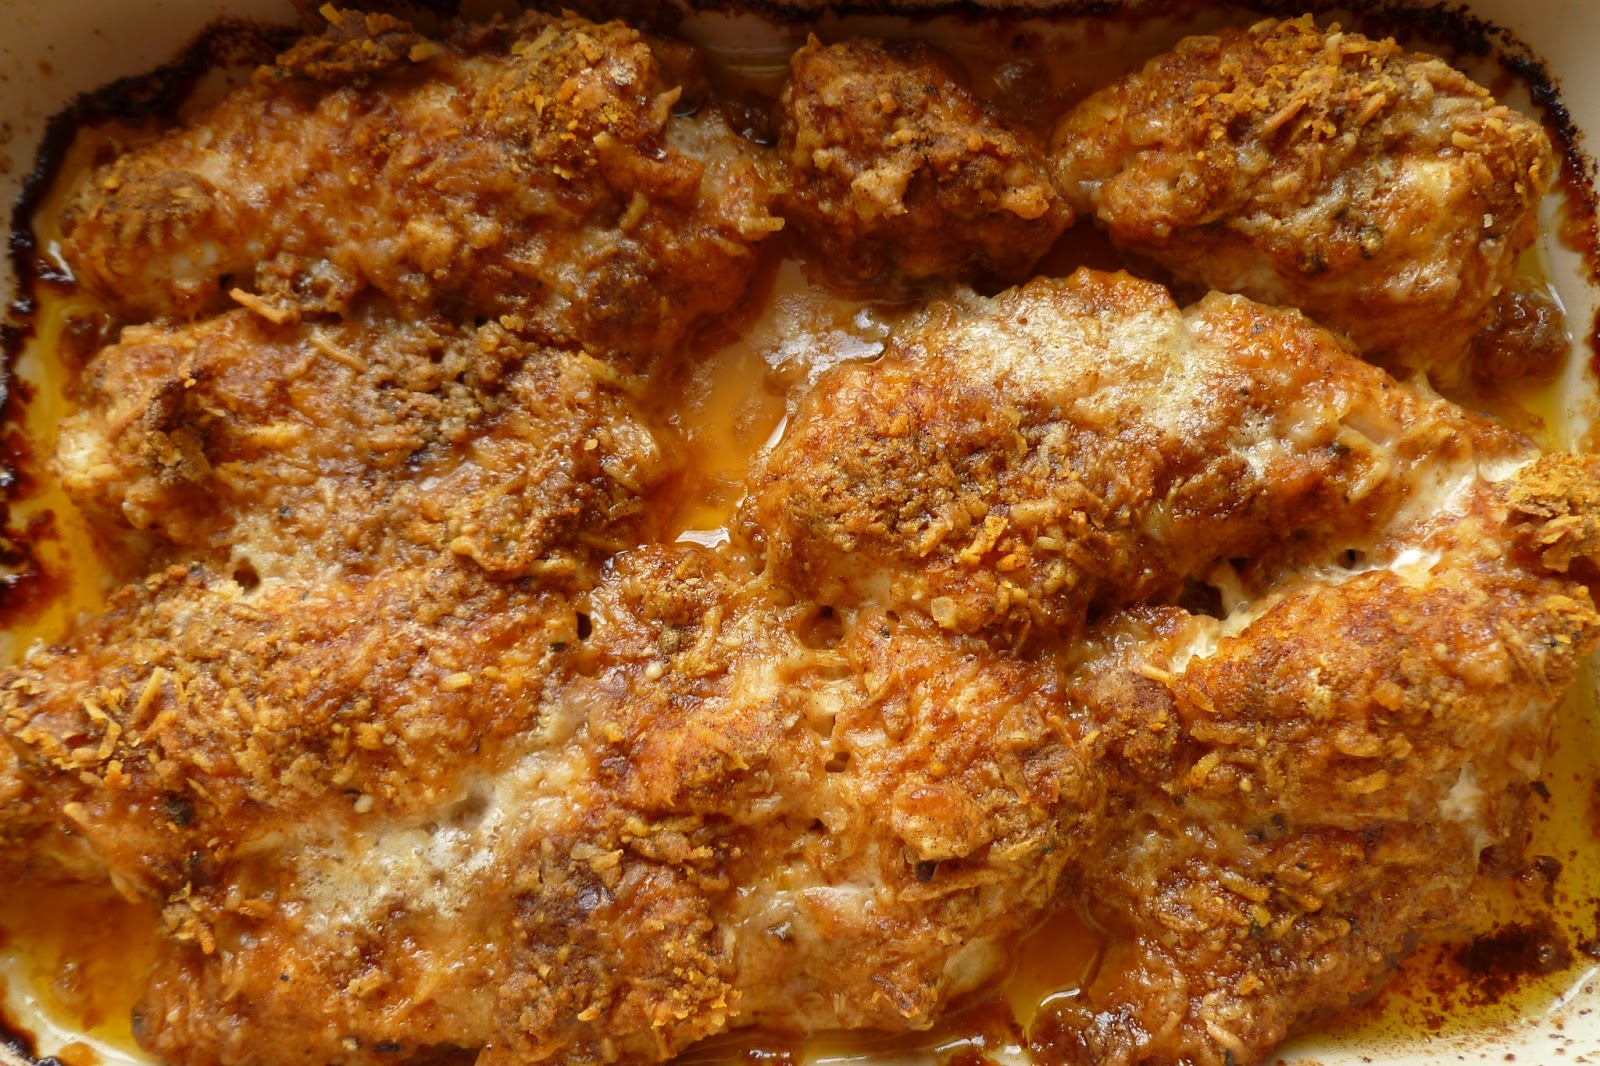 Baked Parmesan Paprika Chicken - made September 2, 2013 from Pia ...